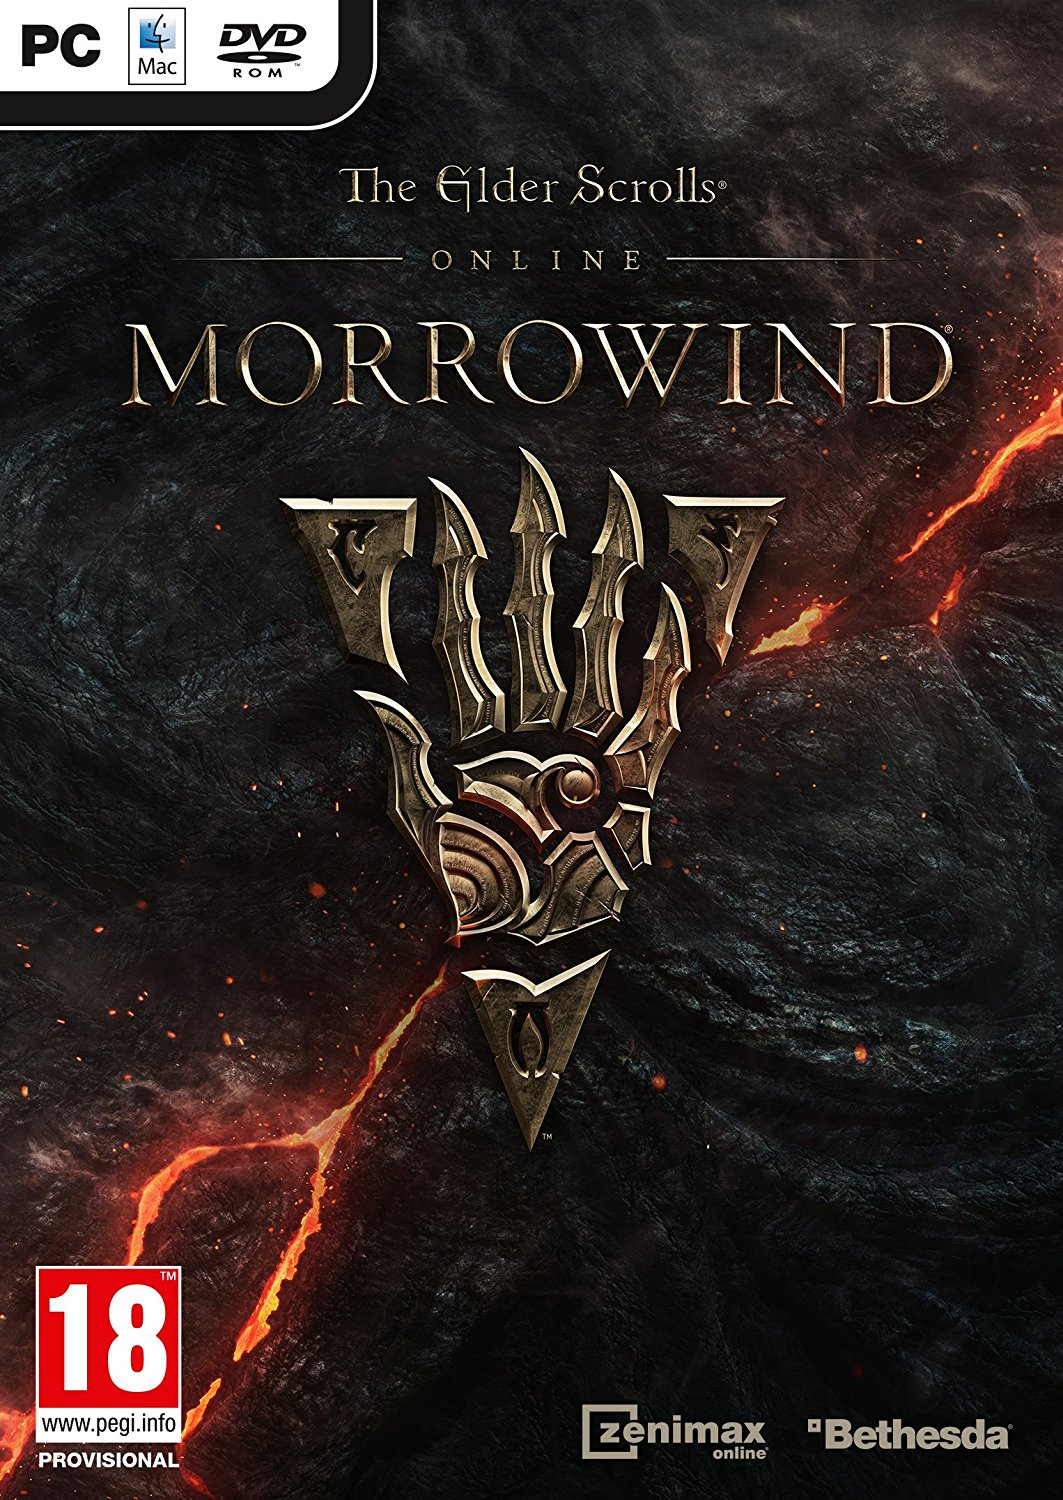 The Elder Scrolls Online Morrowind - PC